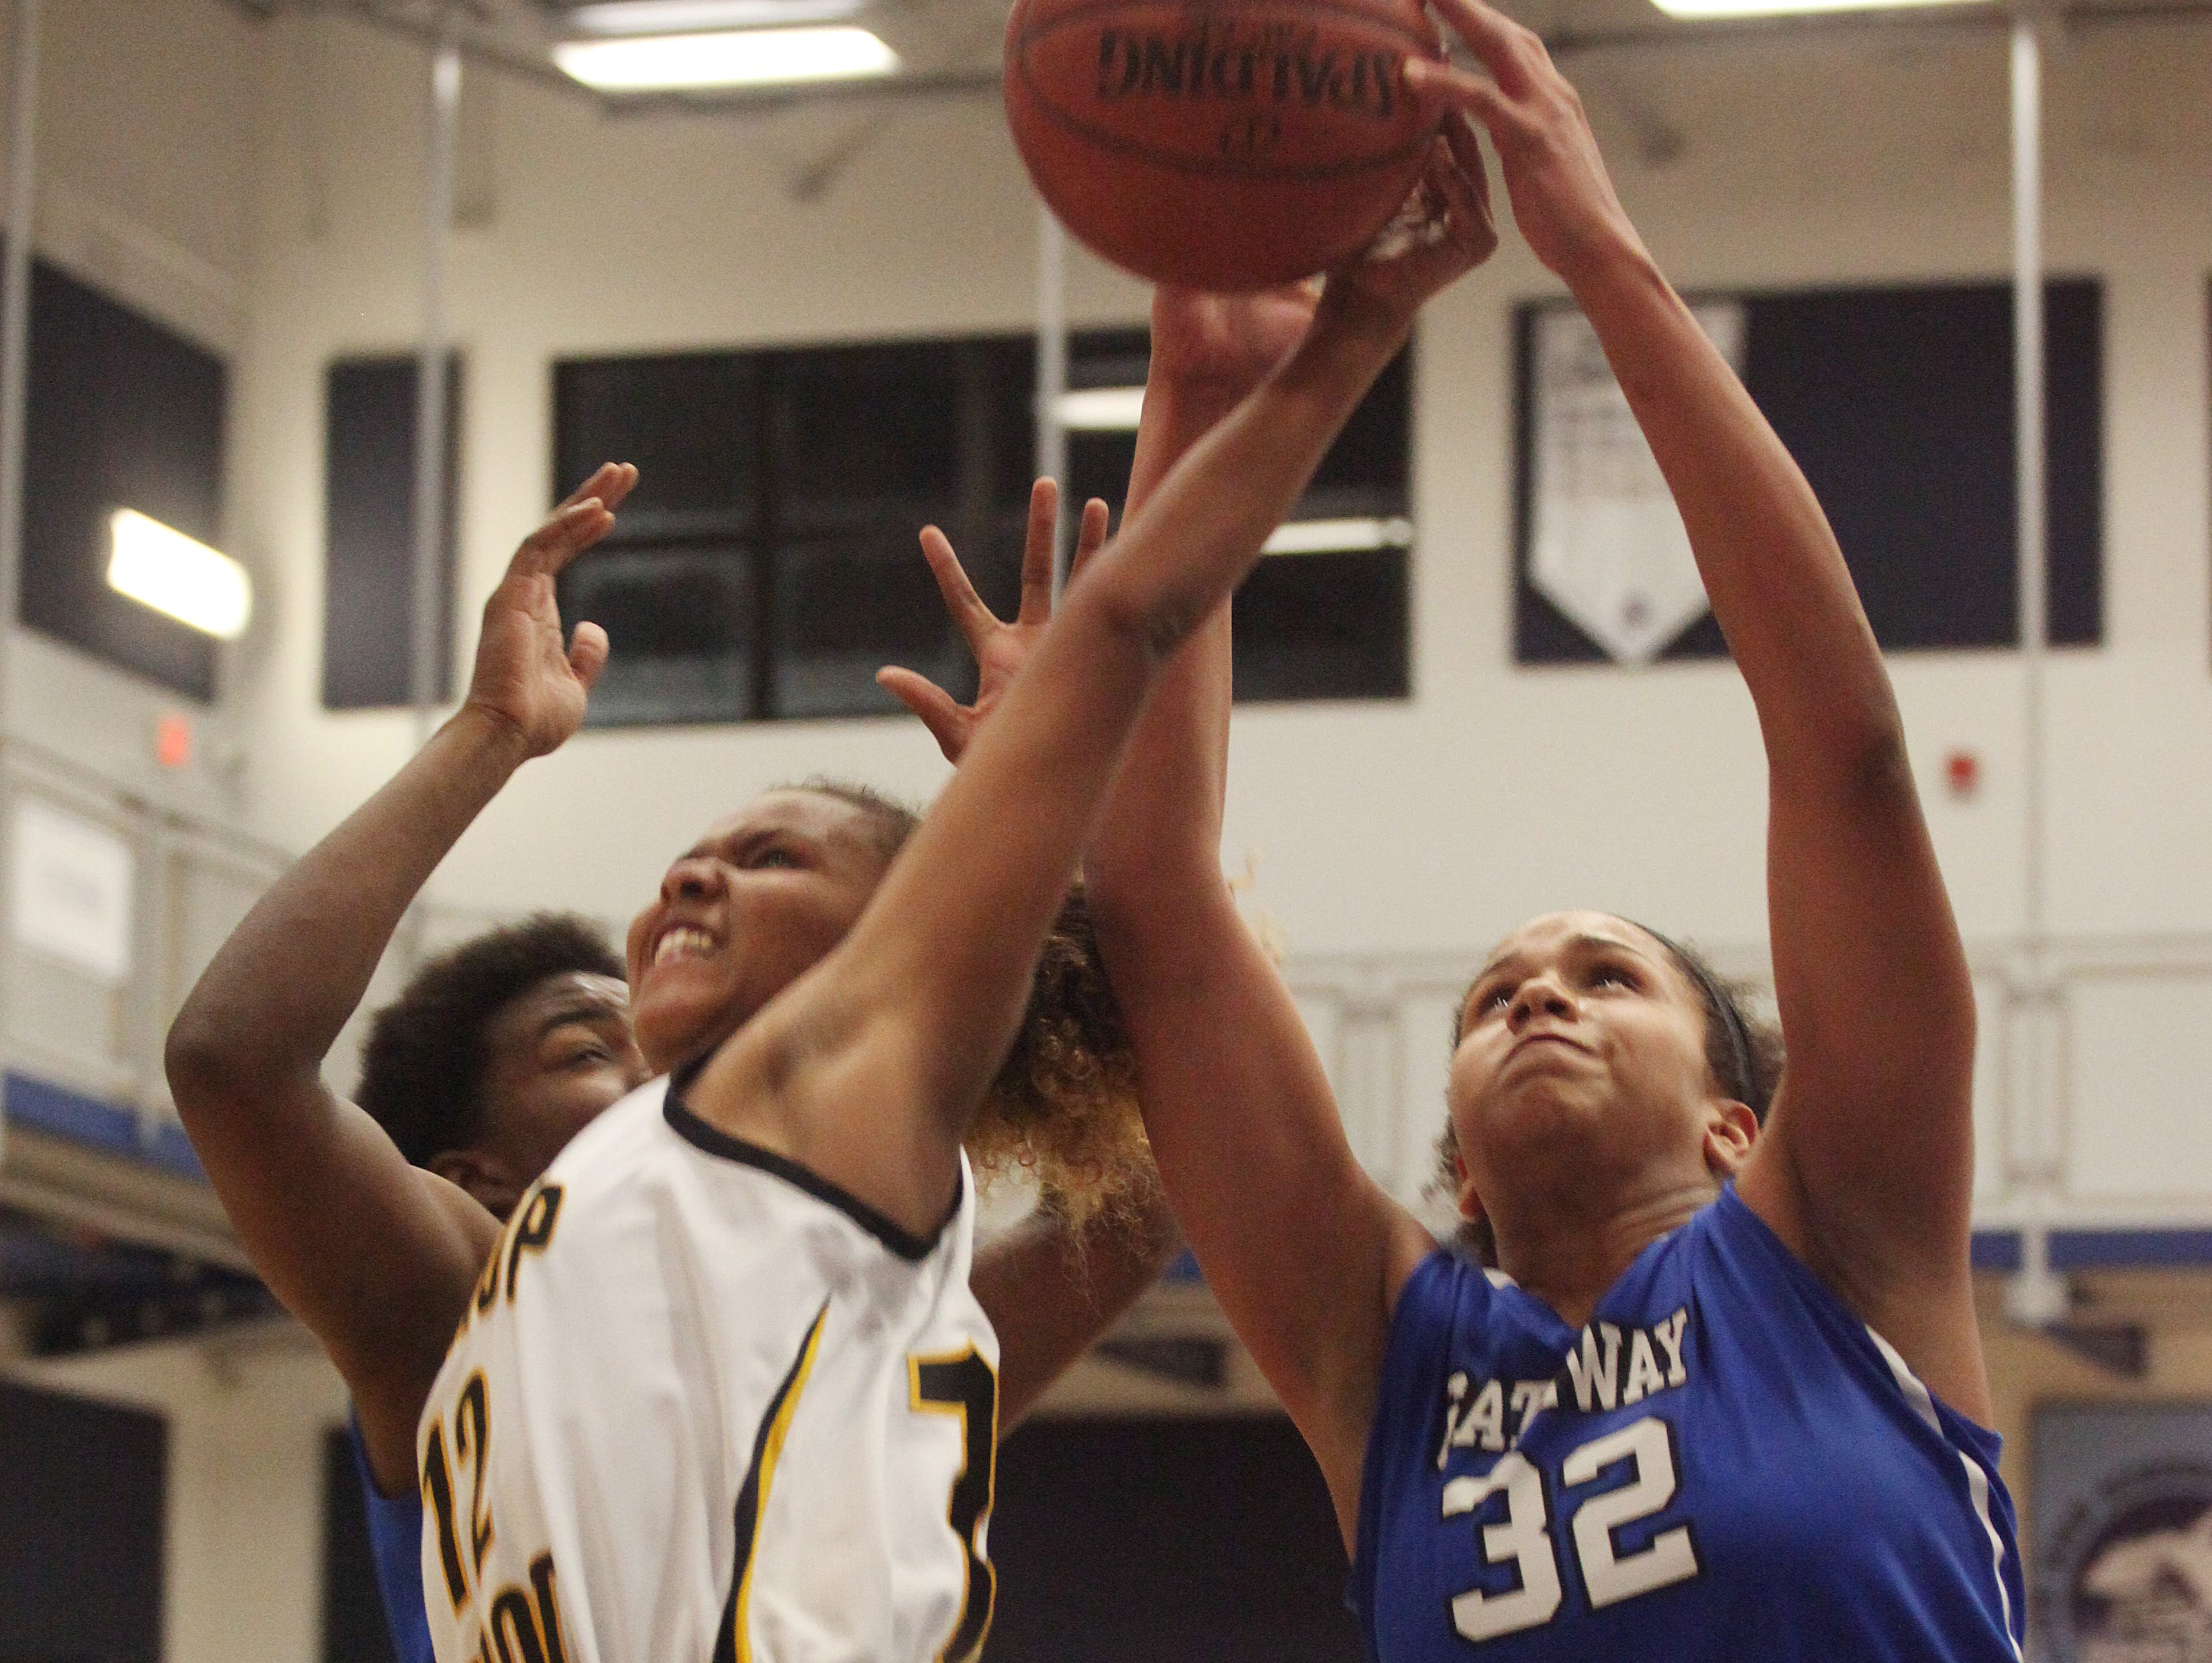 Gateway Charter's Tamia Battle and Bishop Verot's Sequoyah Robinson battle over the rebound during the District 4A-10 finals at Oasis High School on Thursday night.